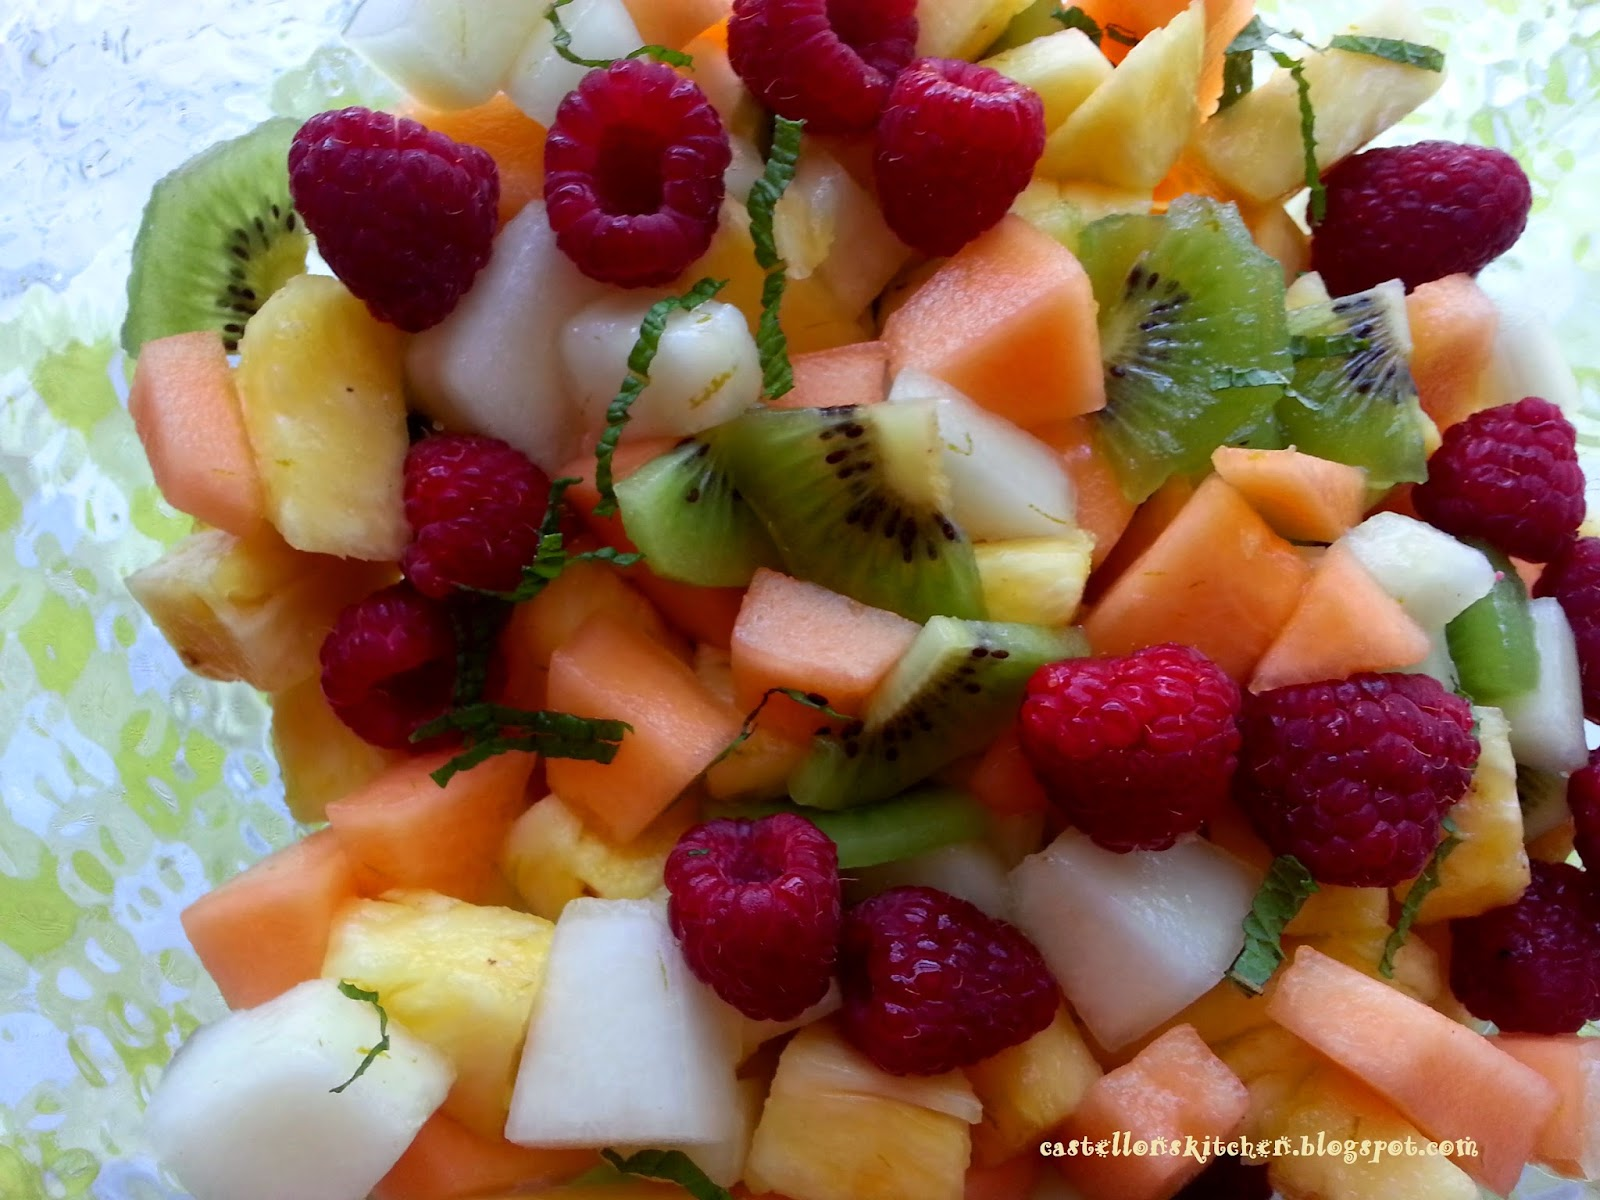 Castellon's Kitchen: Summer Fruit Salad with Ginger and Lime